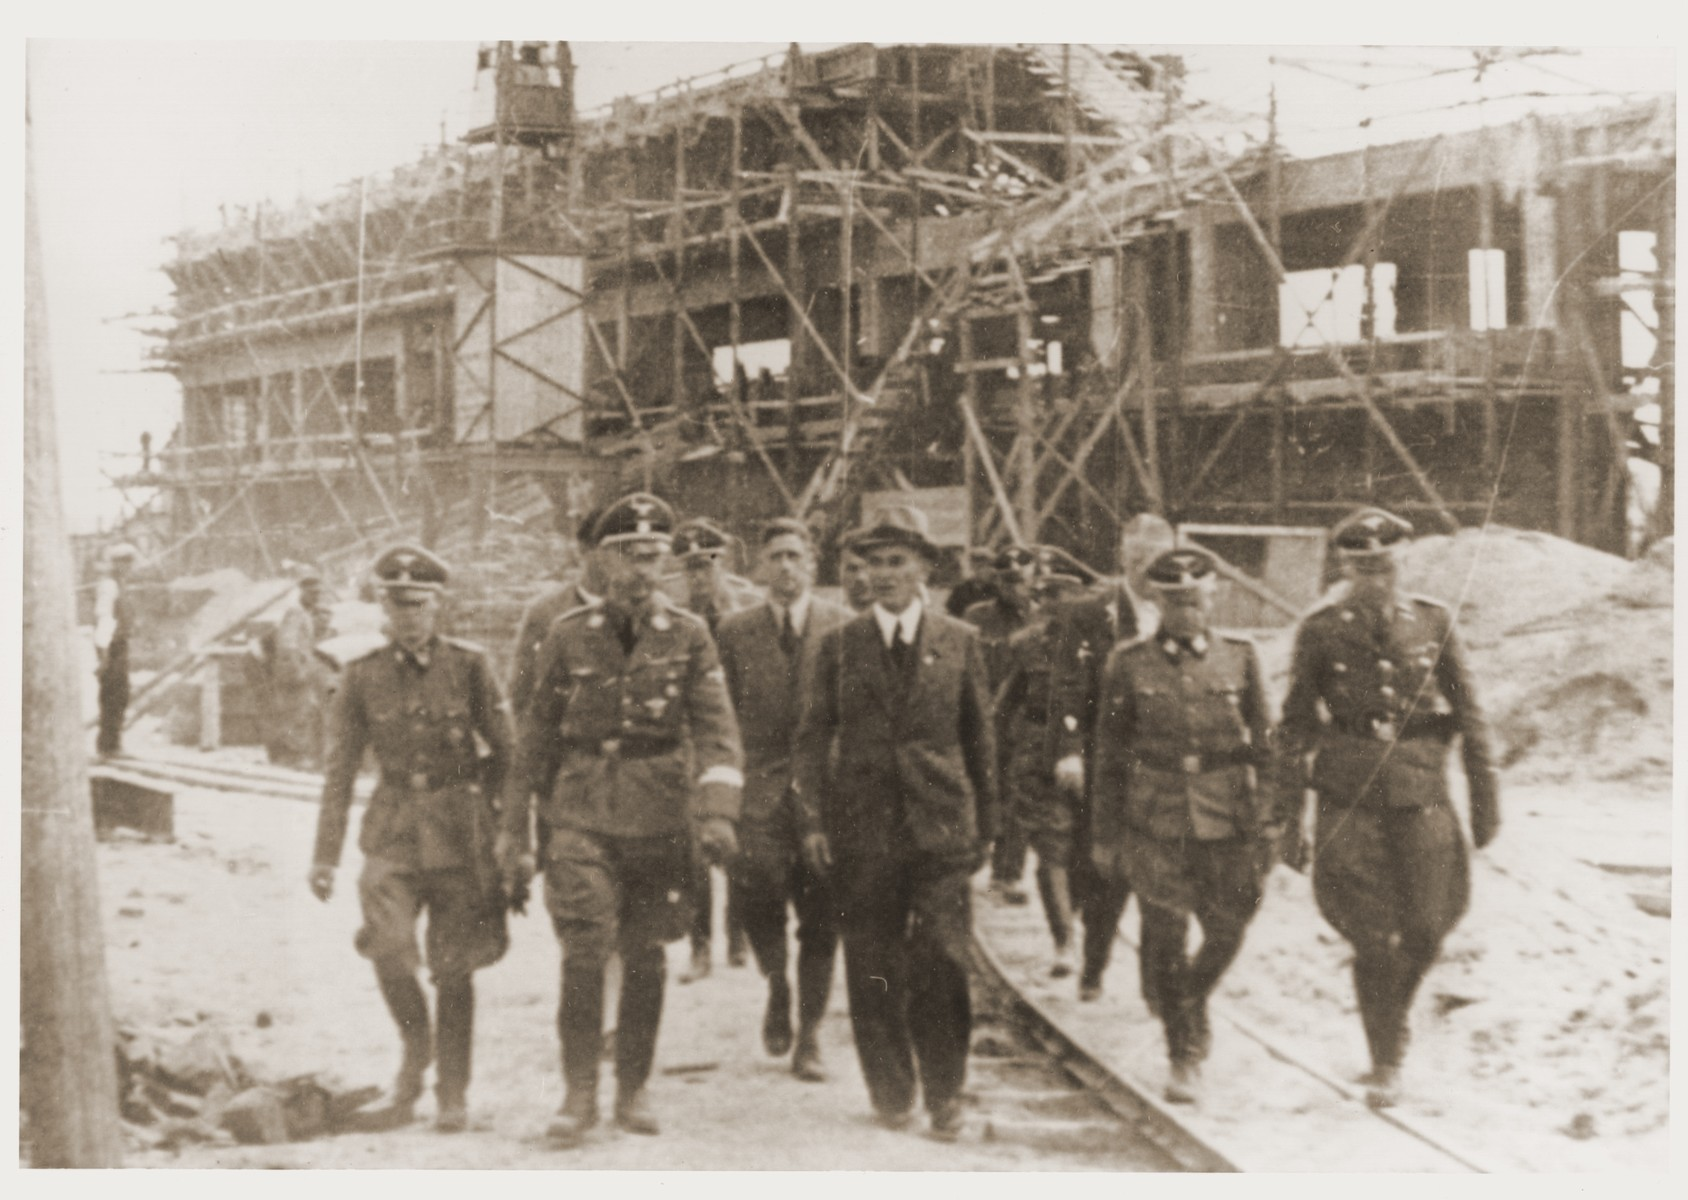 Reichsfuehrer SS Heinrich Himmler tours the Monowitz-Buna building site in the company of SS officers and IG Farben engineers.   Pictured in the front row from left to right are: Rudolf Brandt, Heinrich Himmler, Max Faust, unknown and Rudolf Hoess.  Faust, who was an IG Farben engineer, was the head of building operations at Monowitz-Buna.